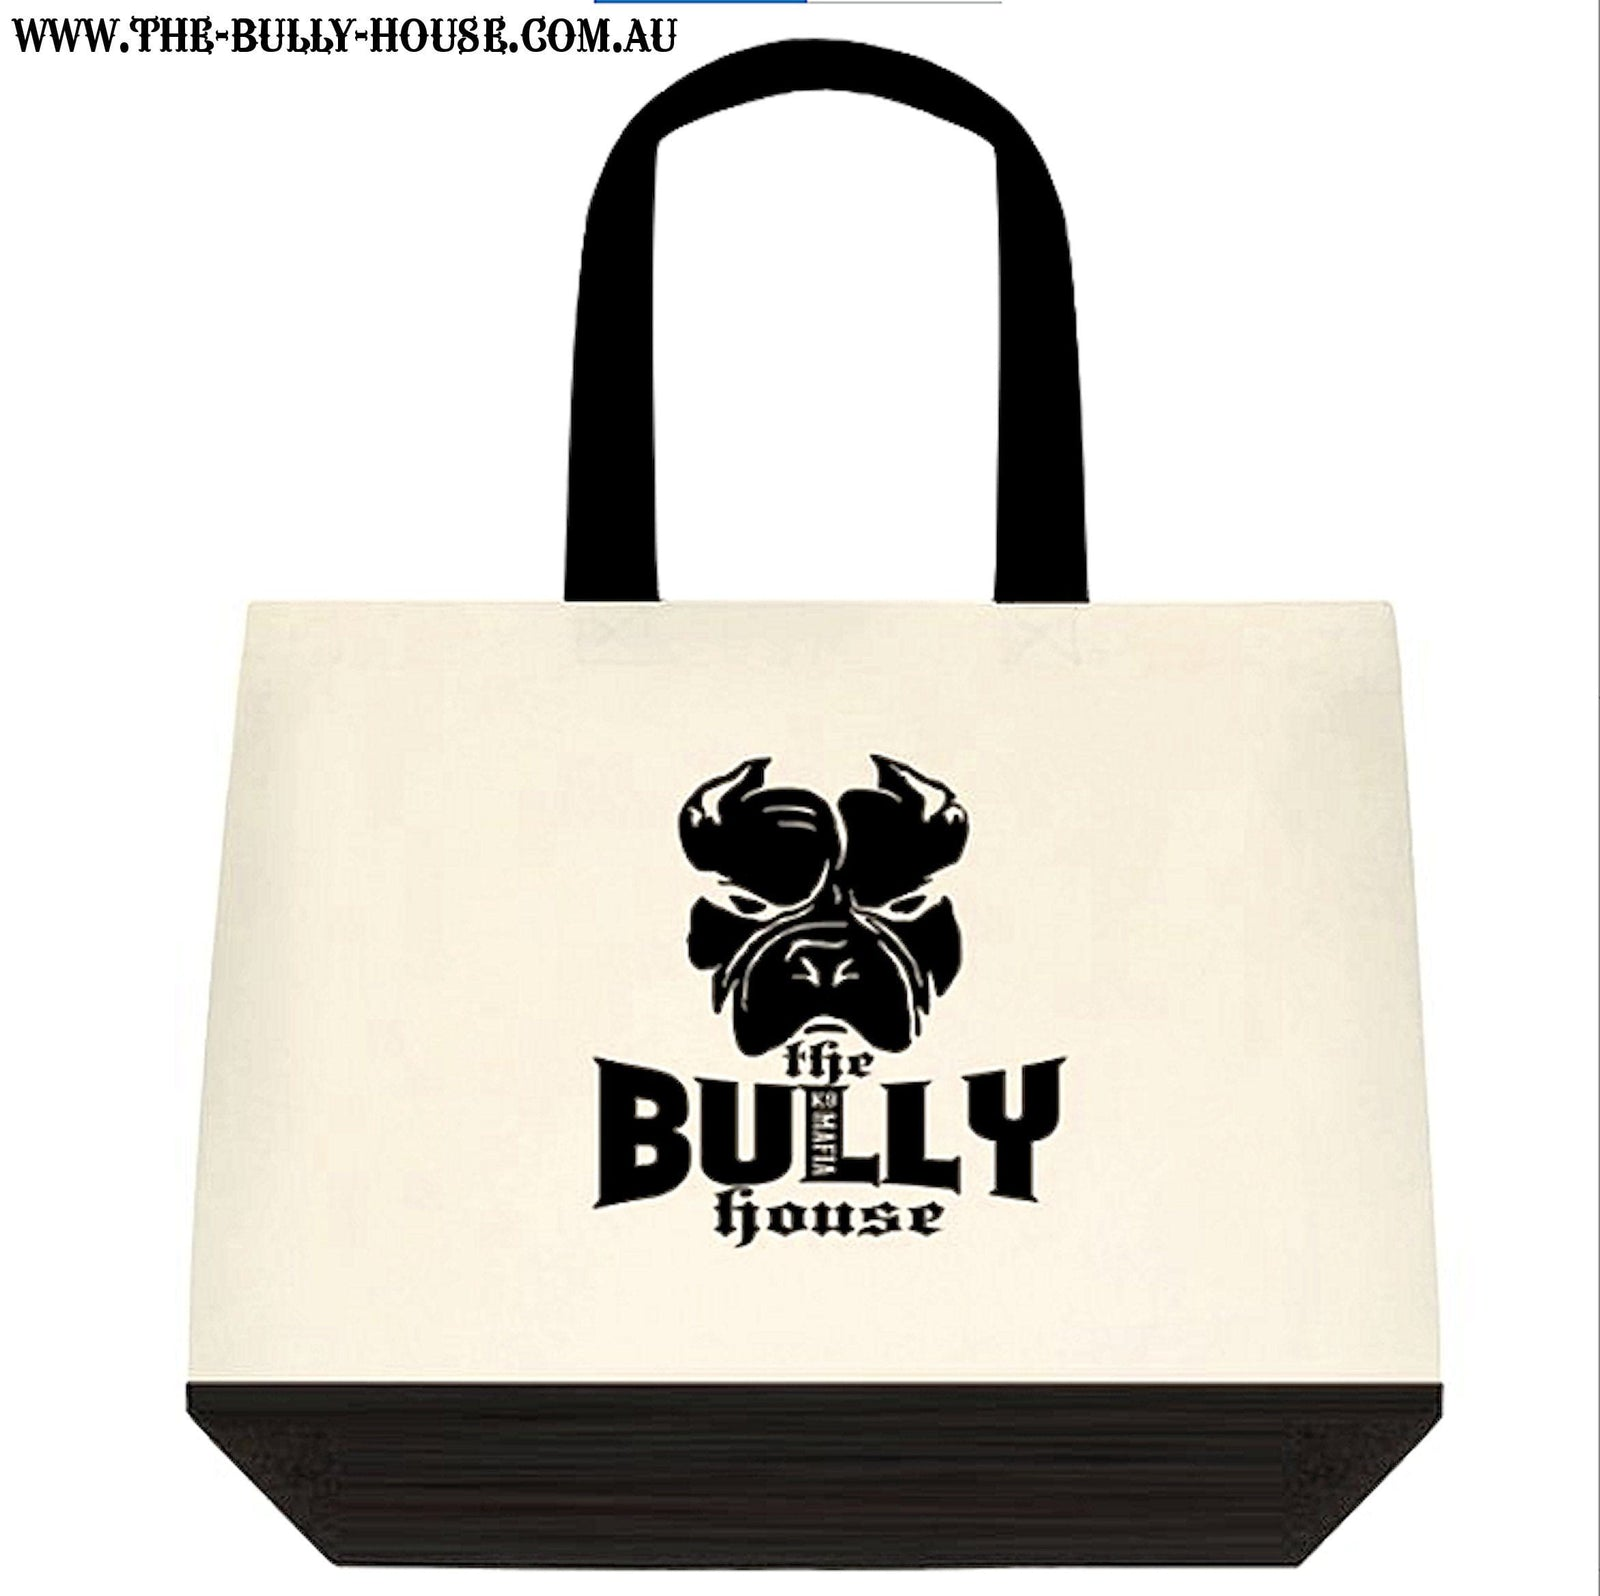 Cotton Tote Bag - by THE BULLY HOUSE - Original logo - 2 tone